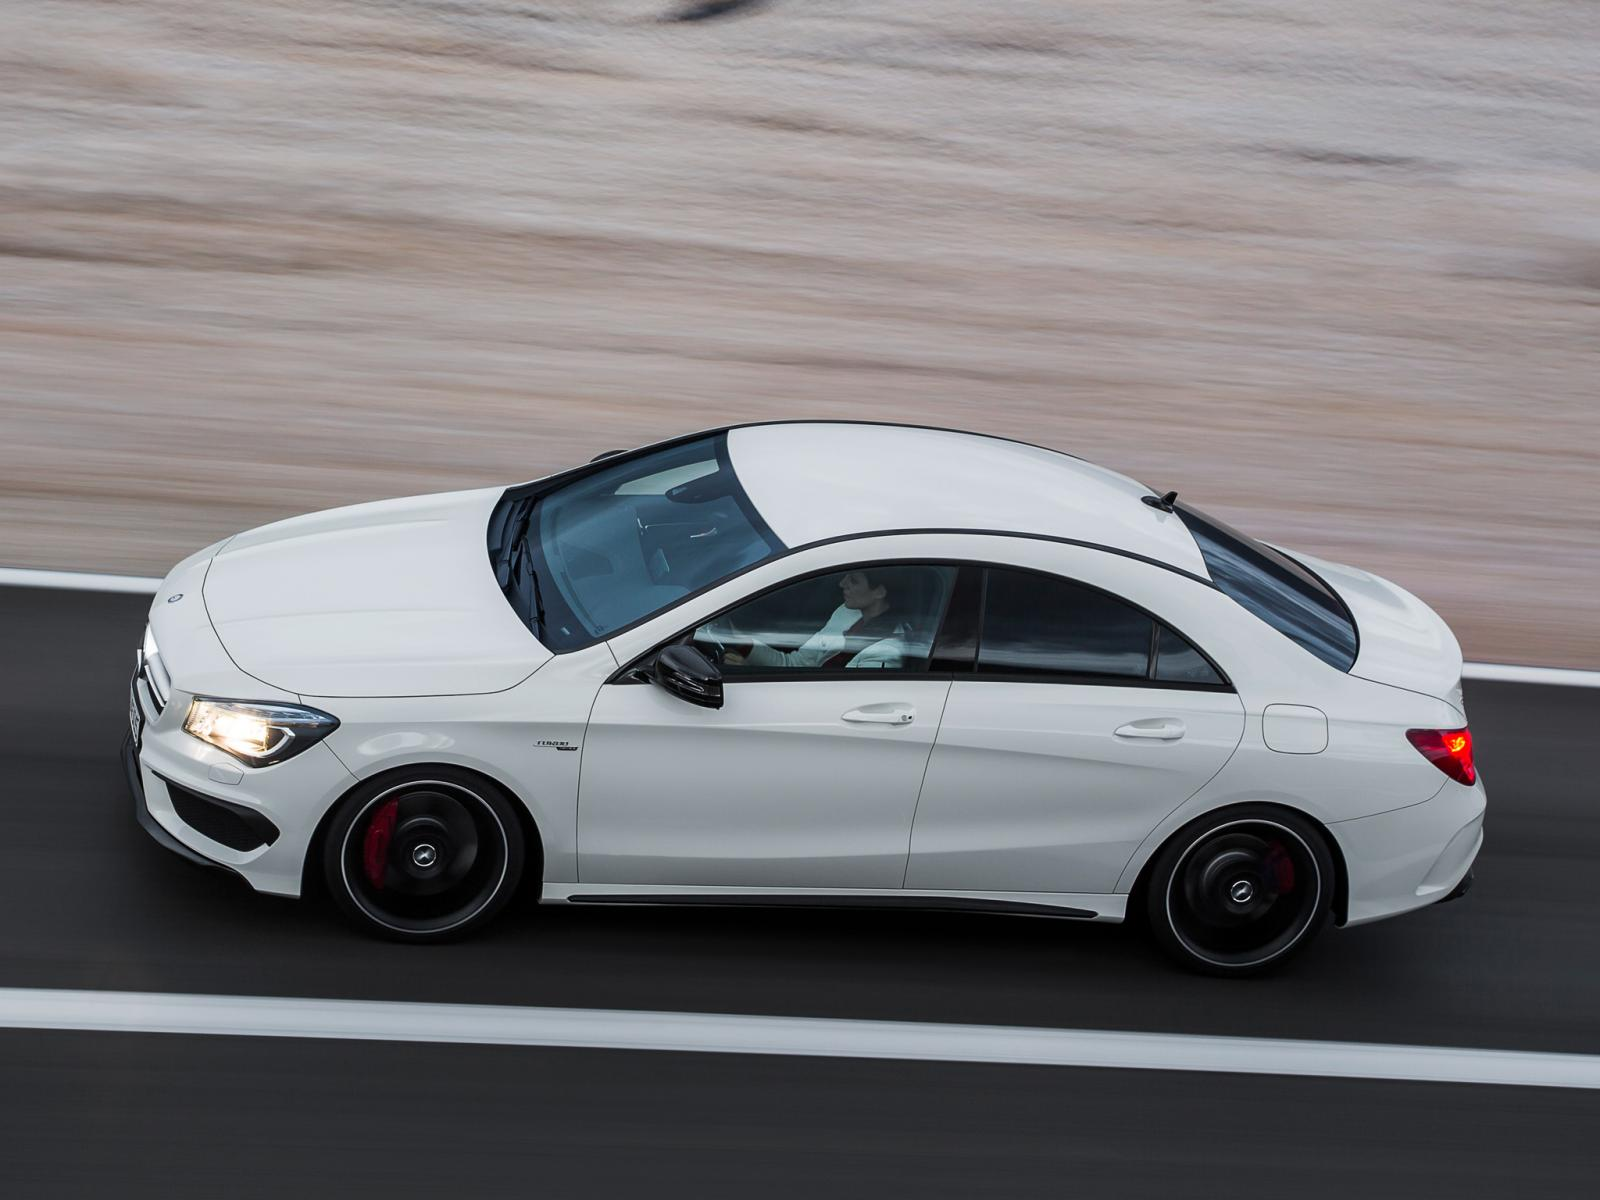 2014 Mercedes CLA45 AMG Official Images 10